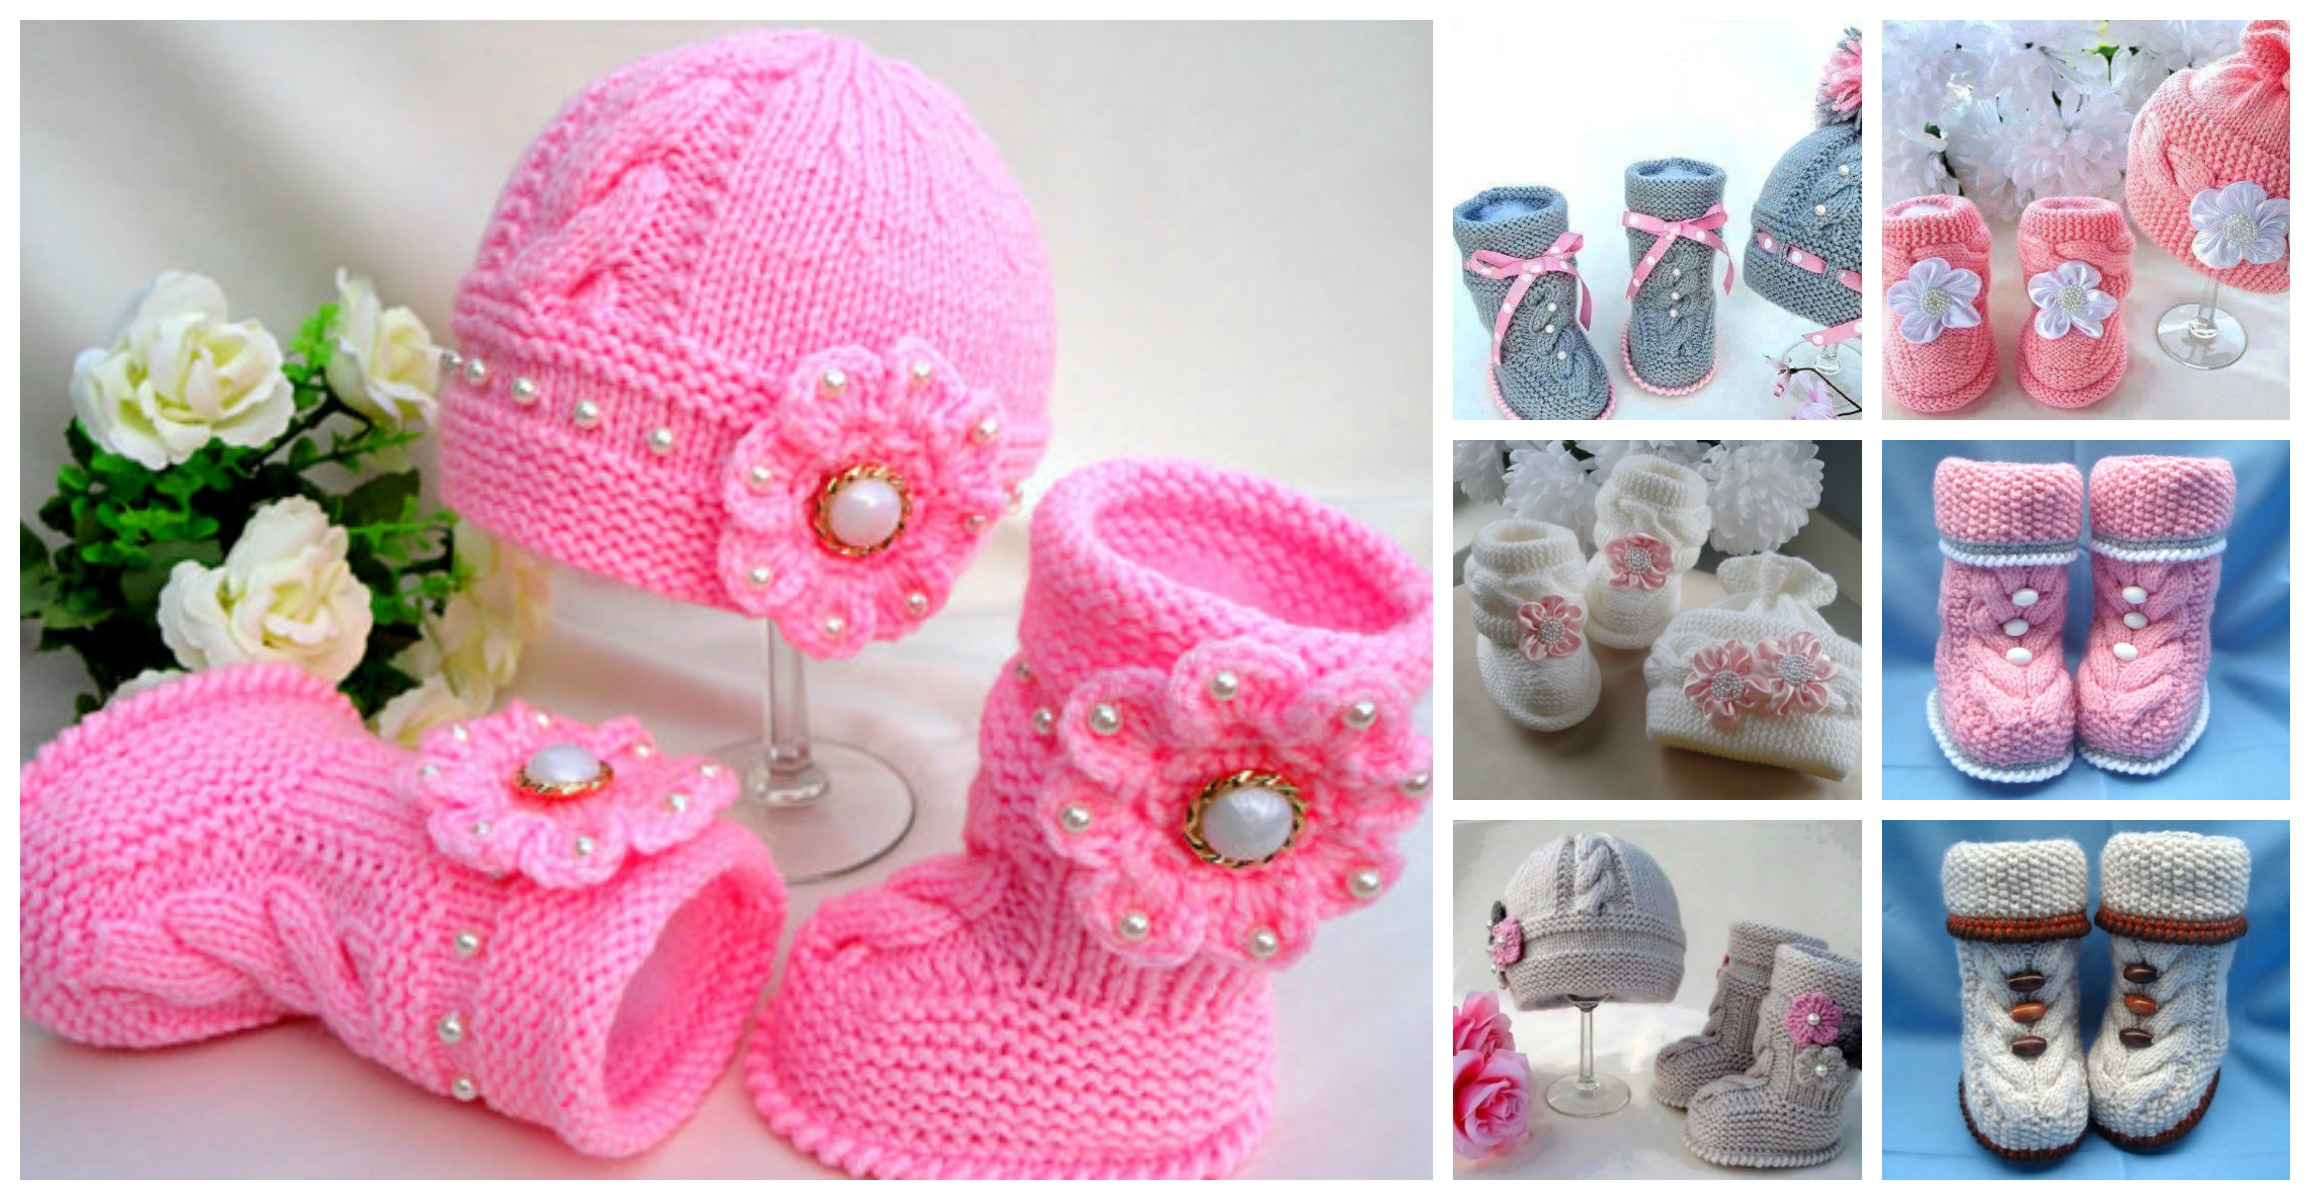 Knit Hat Booties for Baby - Super Cute Patterns | BeesDIY.com